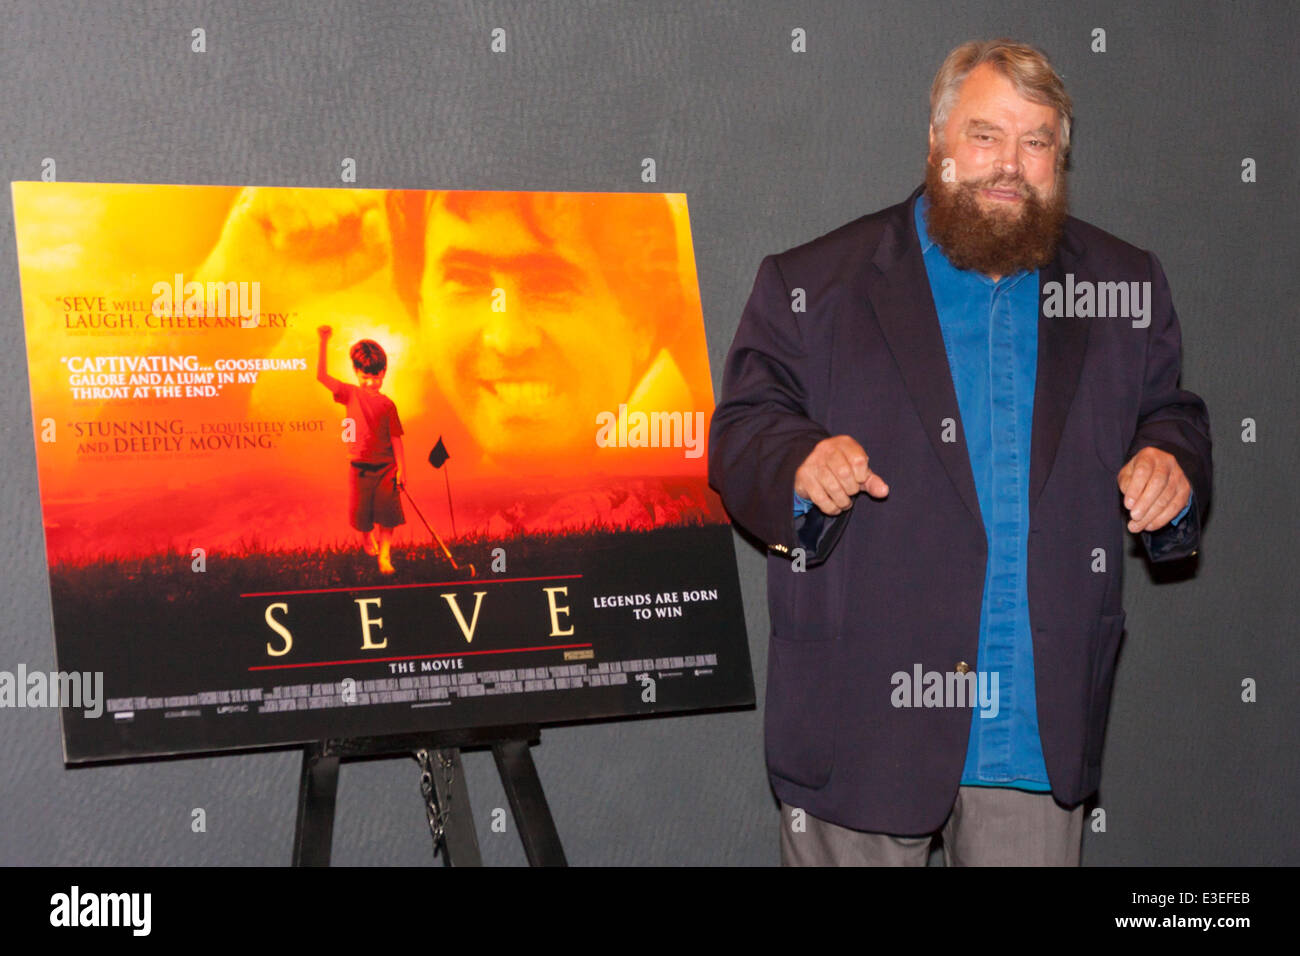 London, UK. 23rd June, 2014. Actor Brian Blessed attends the premiere of the film Seve, a biopic of the life of - Stock Image